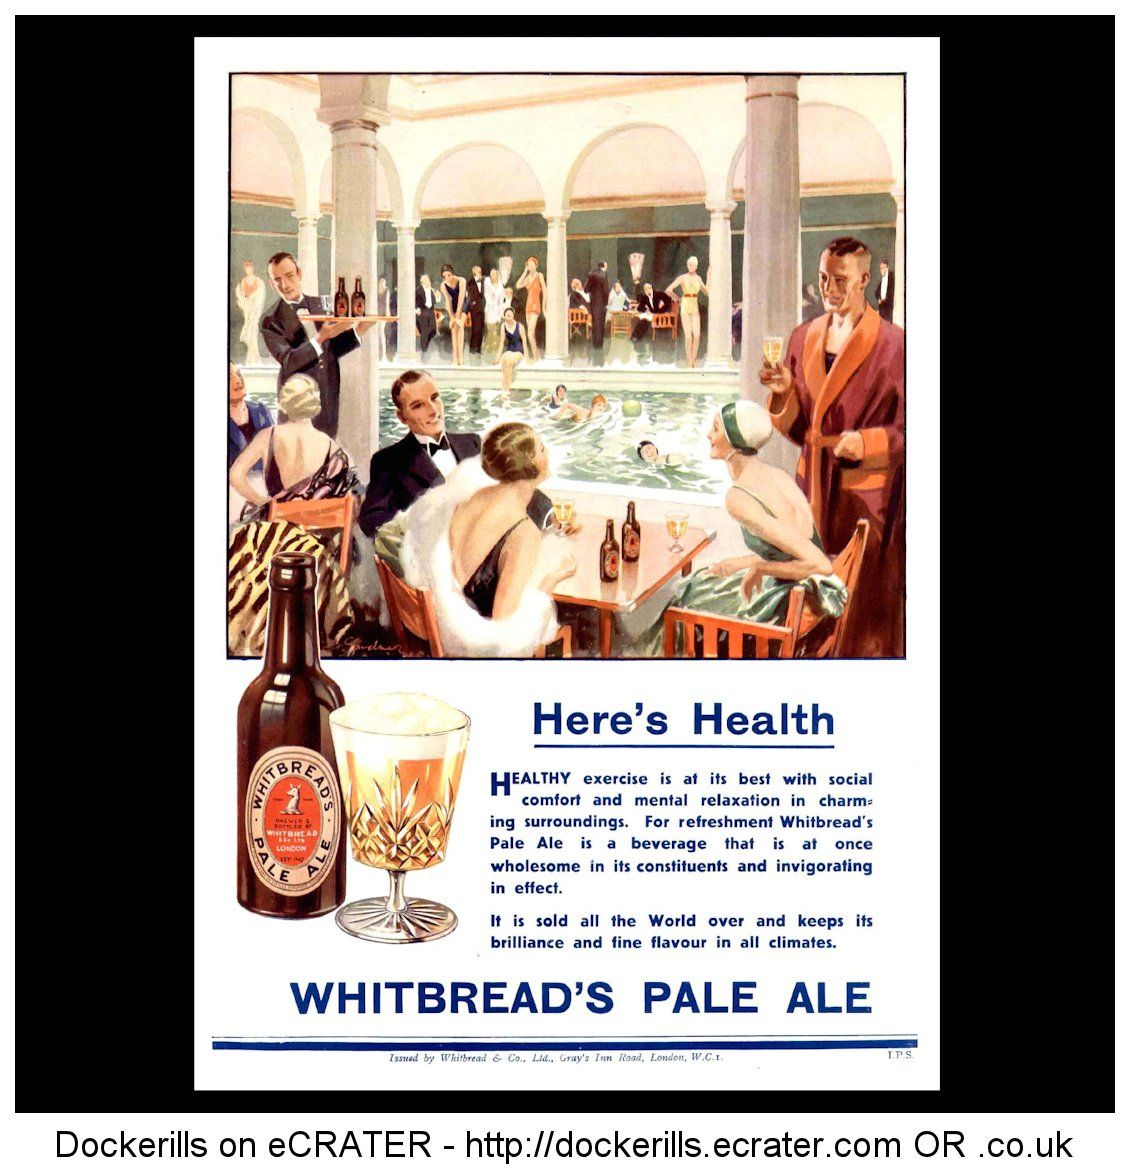 Whitbread S Pale Ale Advert From The Bystander Magazine